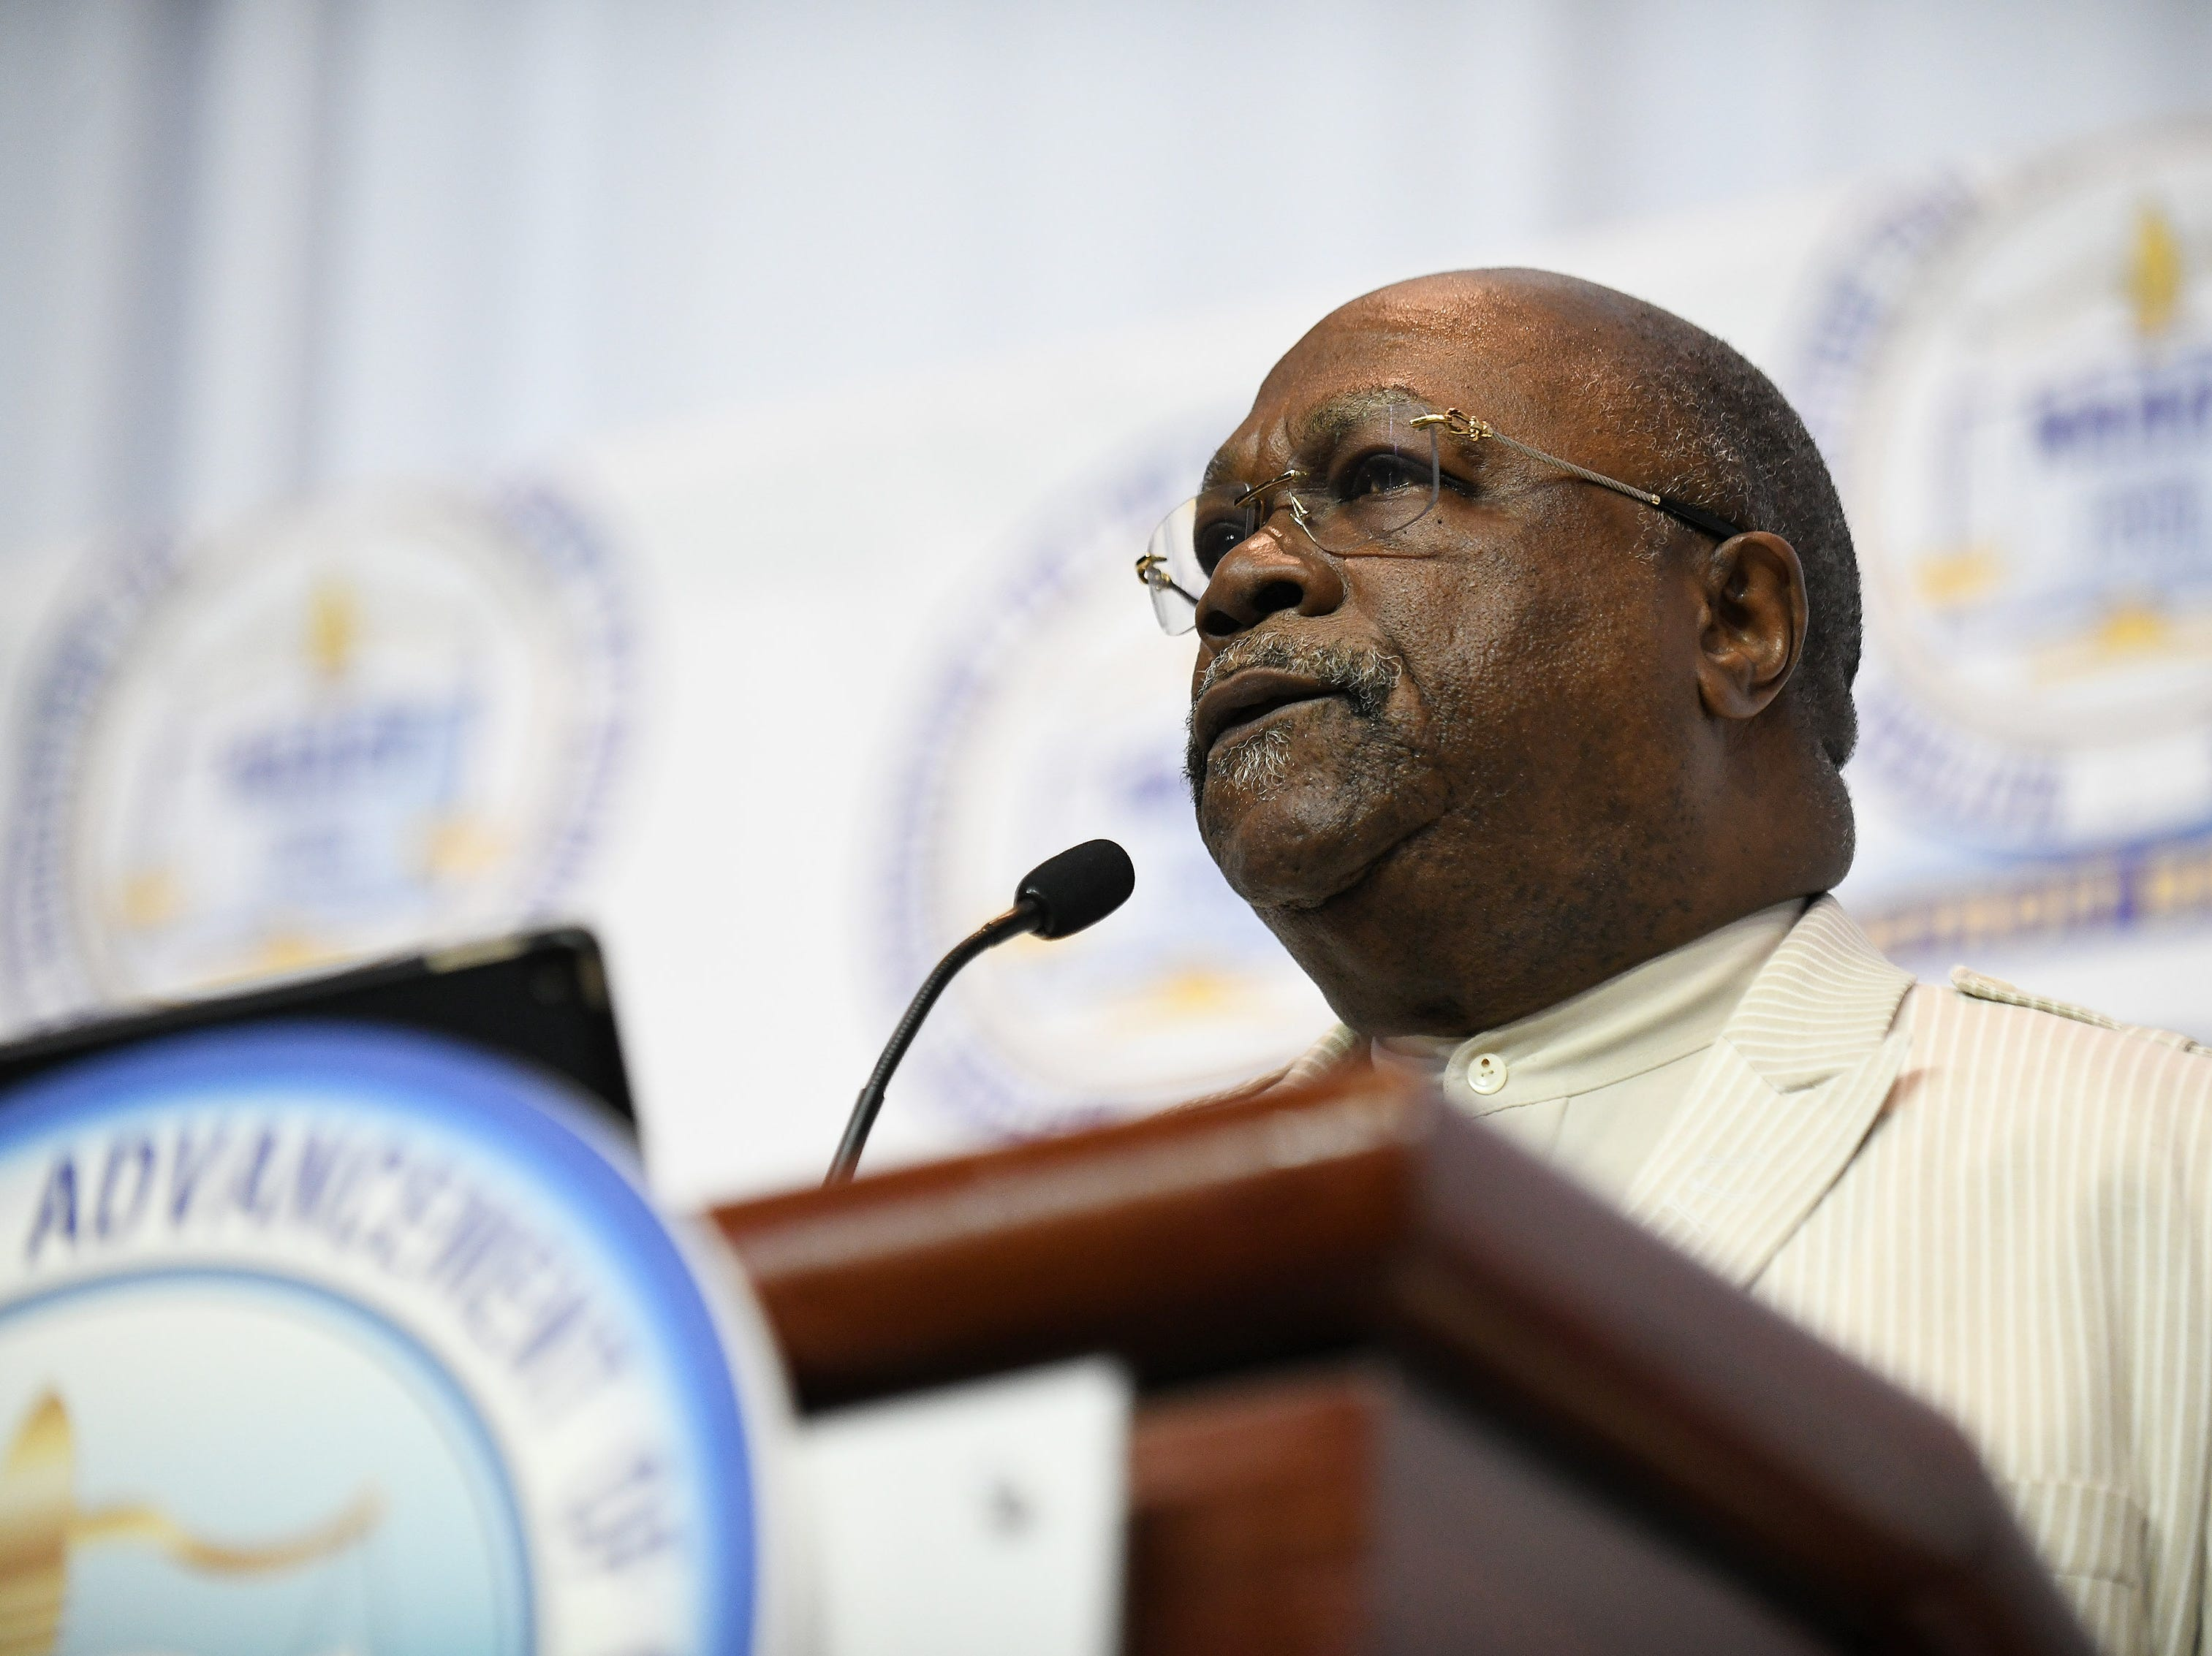 NAACP Detroit president Rev. Dr. Wendell Anthony welcomes guests to the NAACP 64th Annual Fight For Freedom Fund Dinner at Cobo Center in Detroit on May 5, 2019.